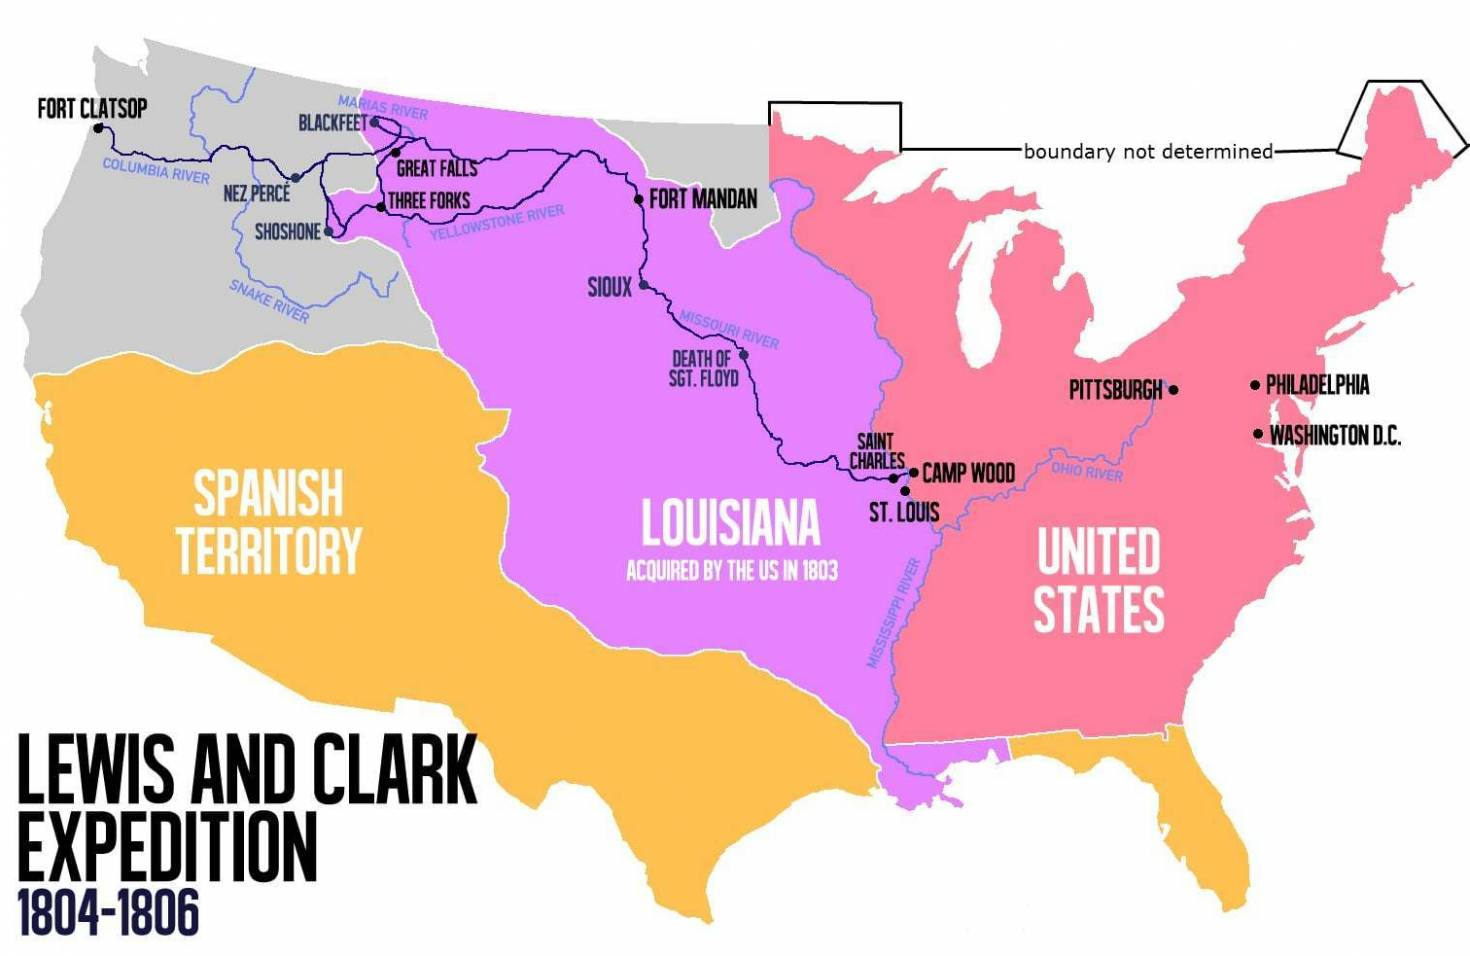 Lewis and Clark Route